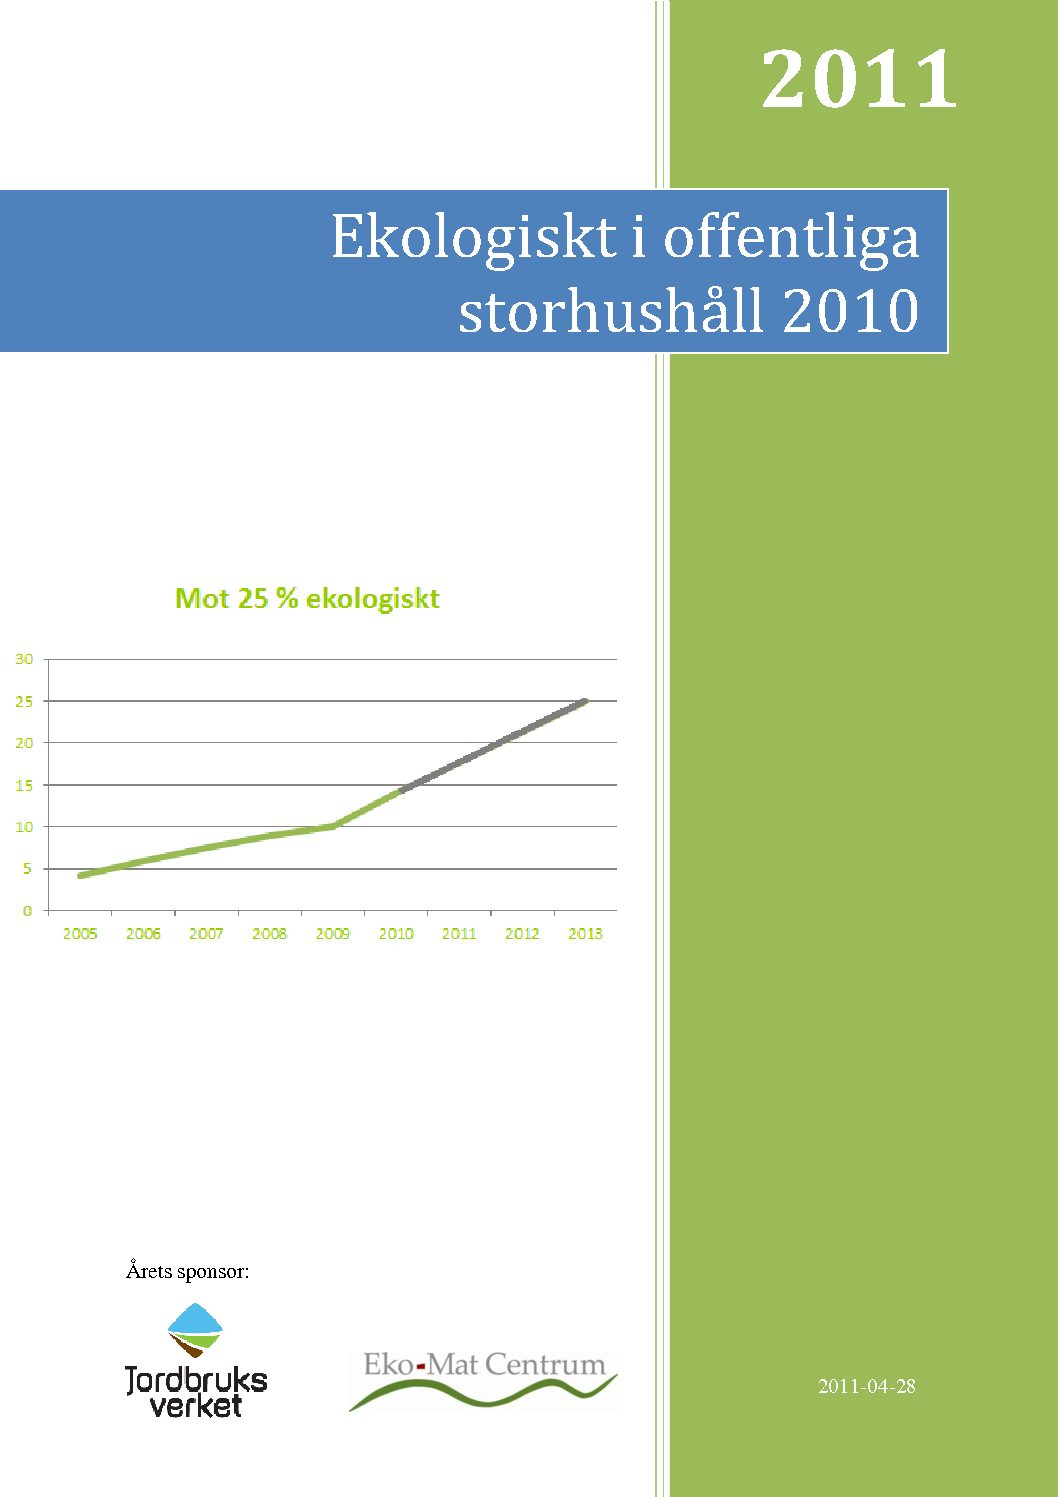 Rapport 2011 (2010)